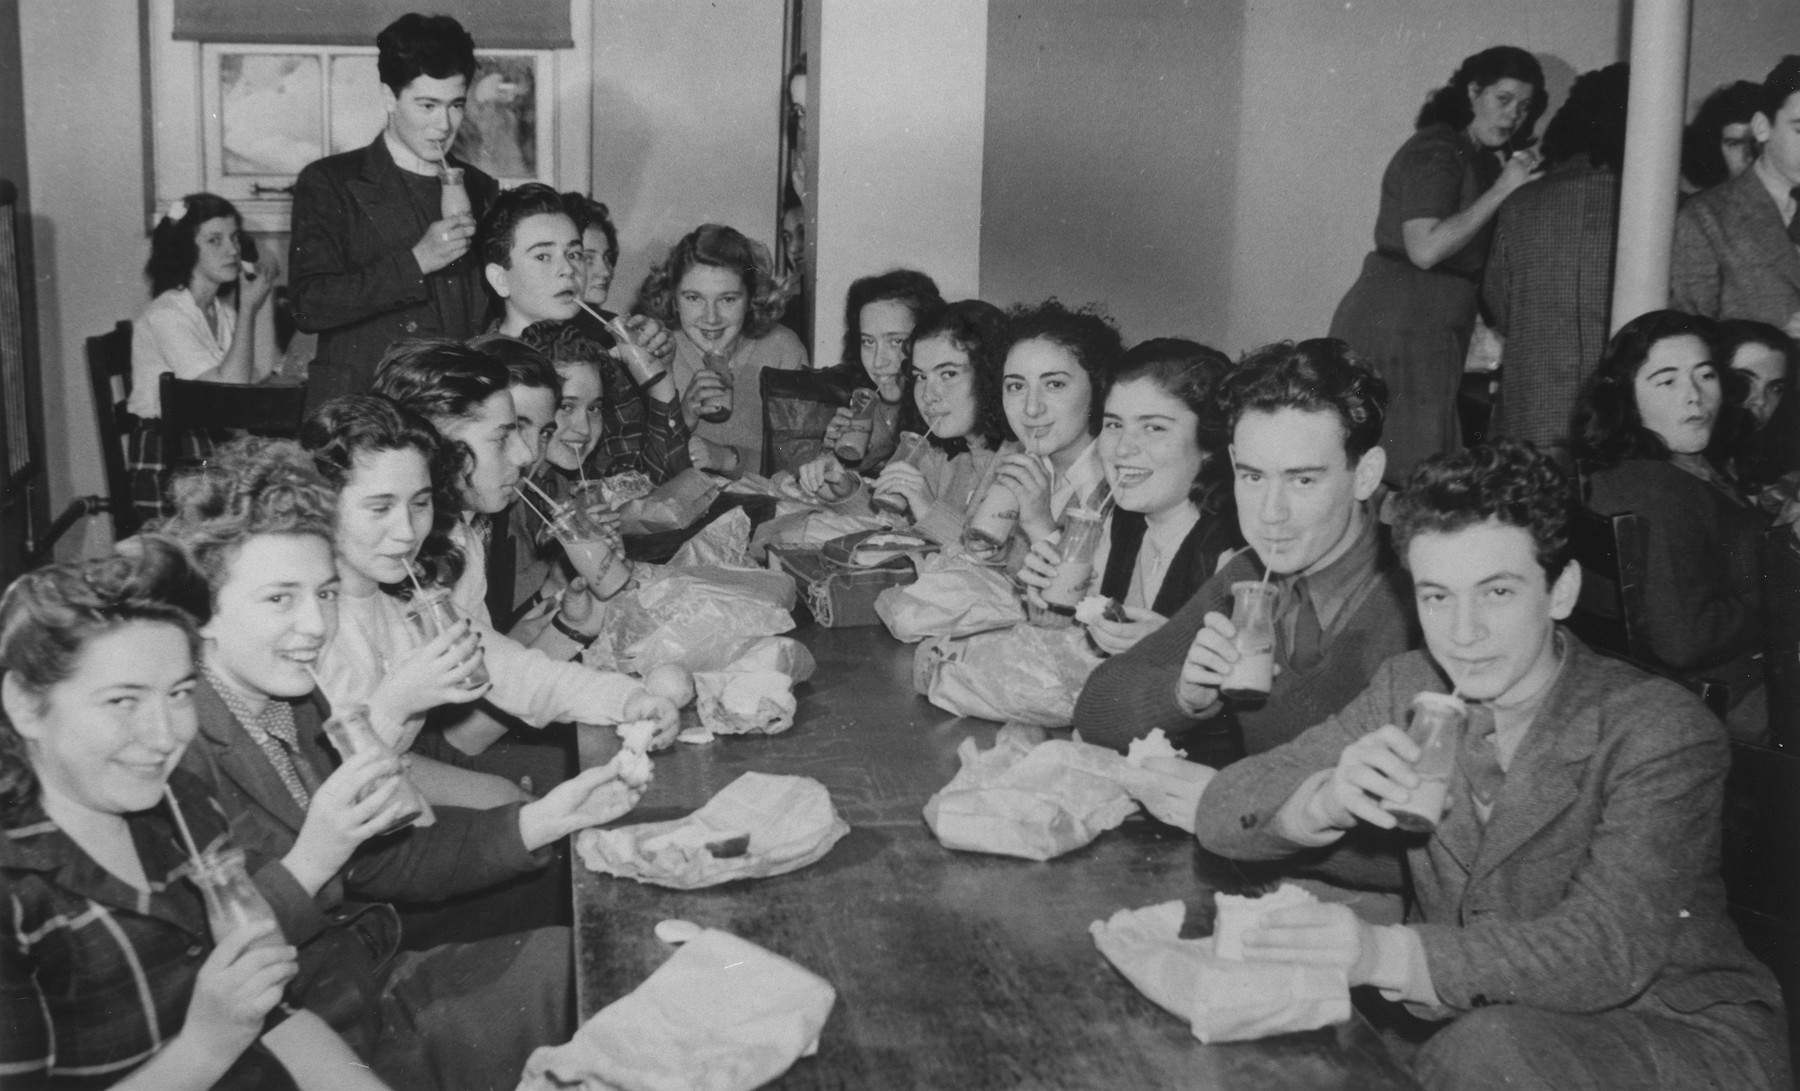 Refugee youth pose with milk bottles and bag lunches in a dining room at the Fort Ontario refugee shelter.   Among those pictured are left side: Edith Broner, Silvio Levy, Ernest Spitzer, Lili Broner, Bruno Kaiser and Ivo Svecenski.  Right side: Herman Kremer, David Hendel, Thea Weiss and Neli Bokros.  Table on right: Lea Hanf.